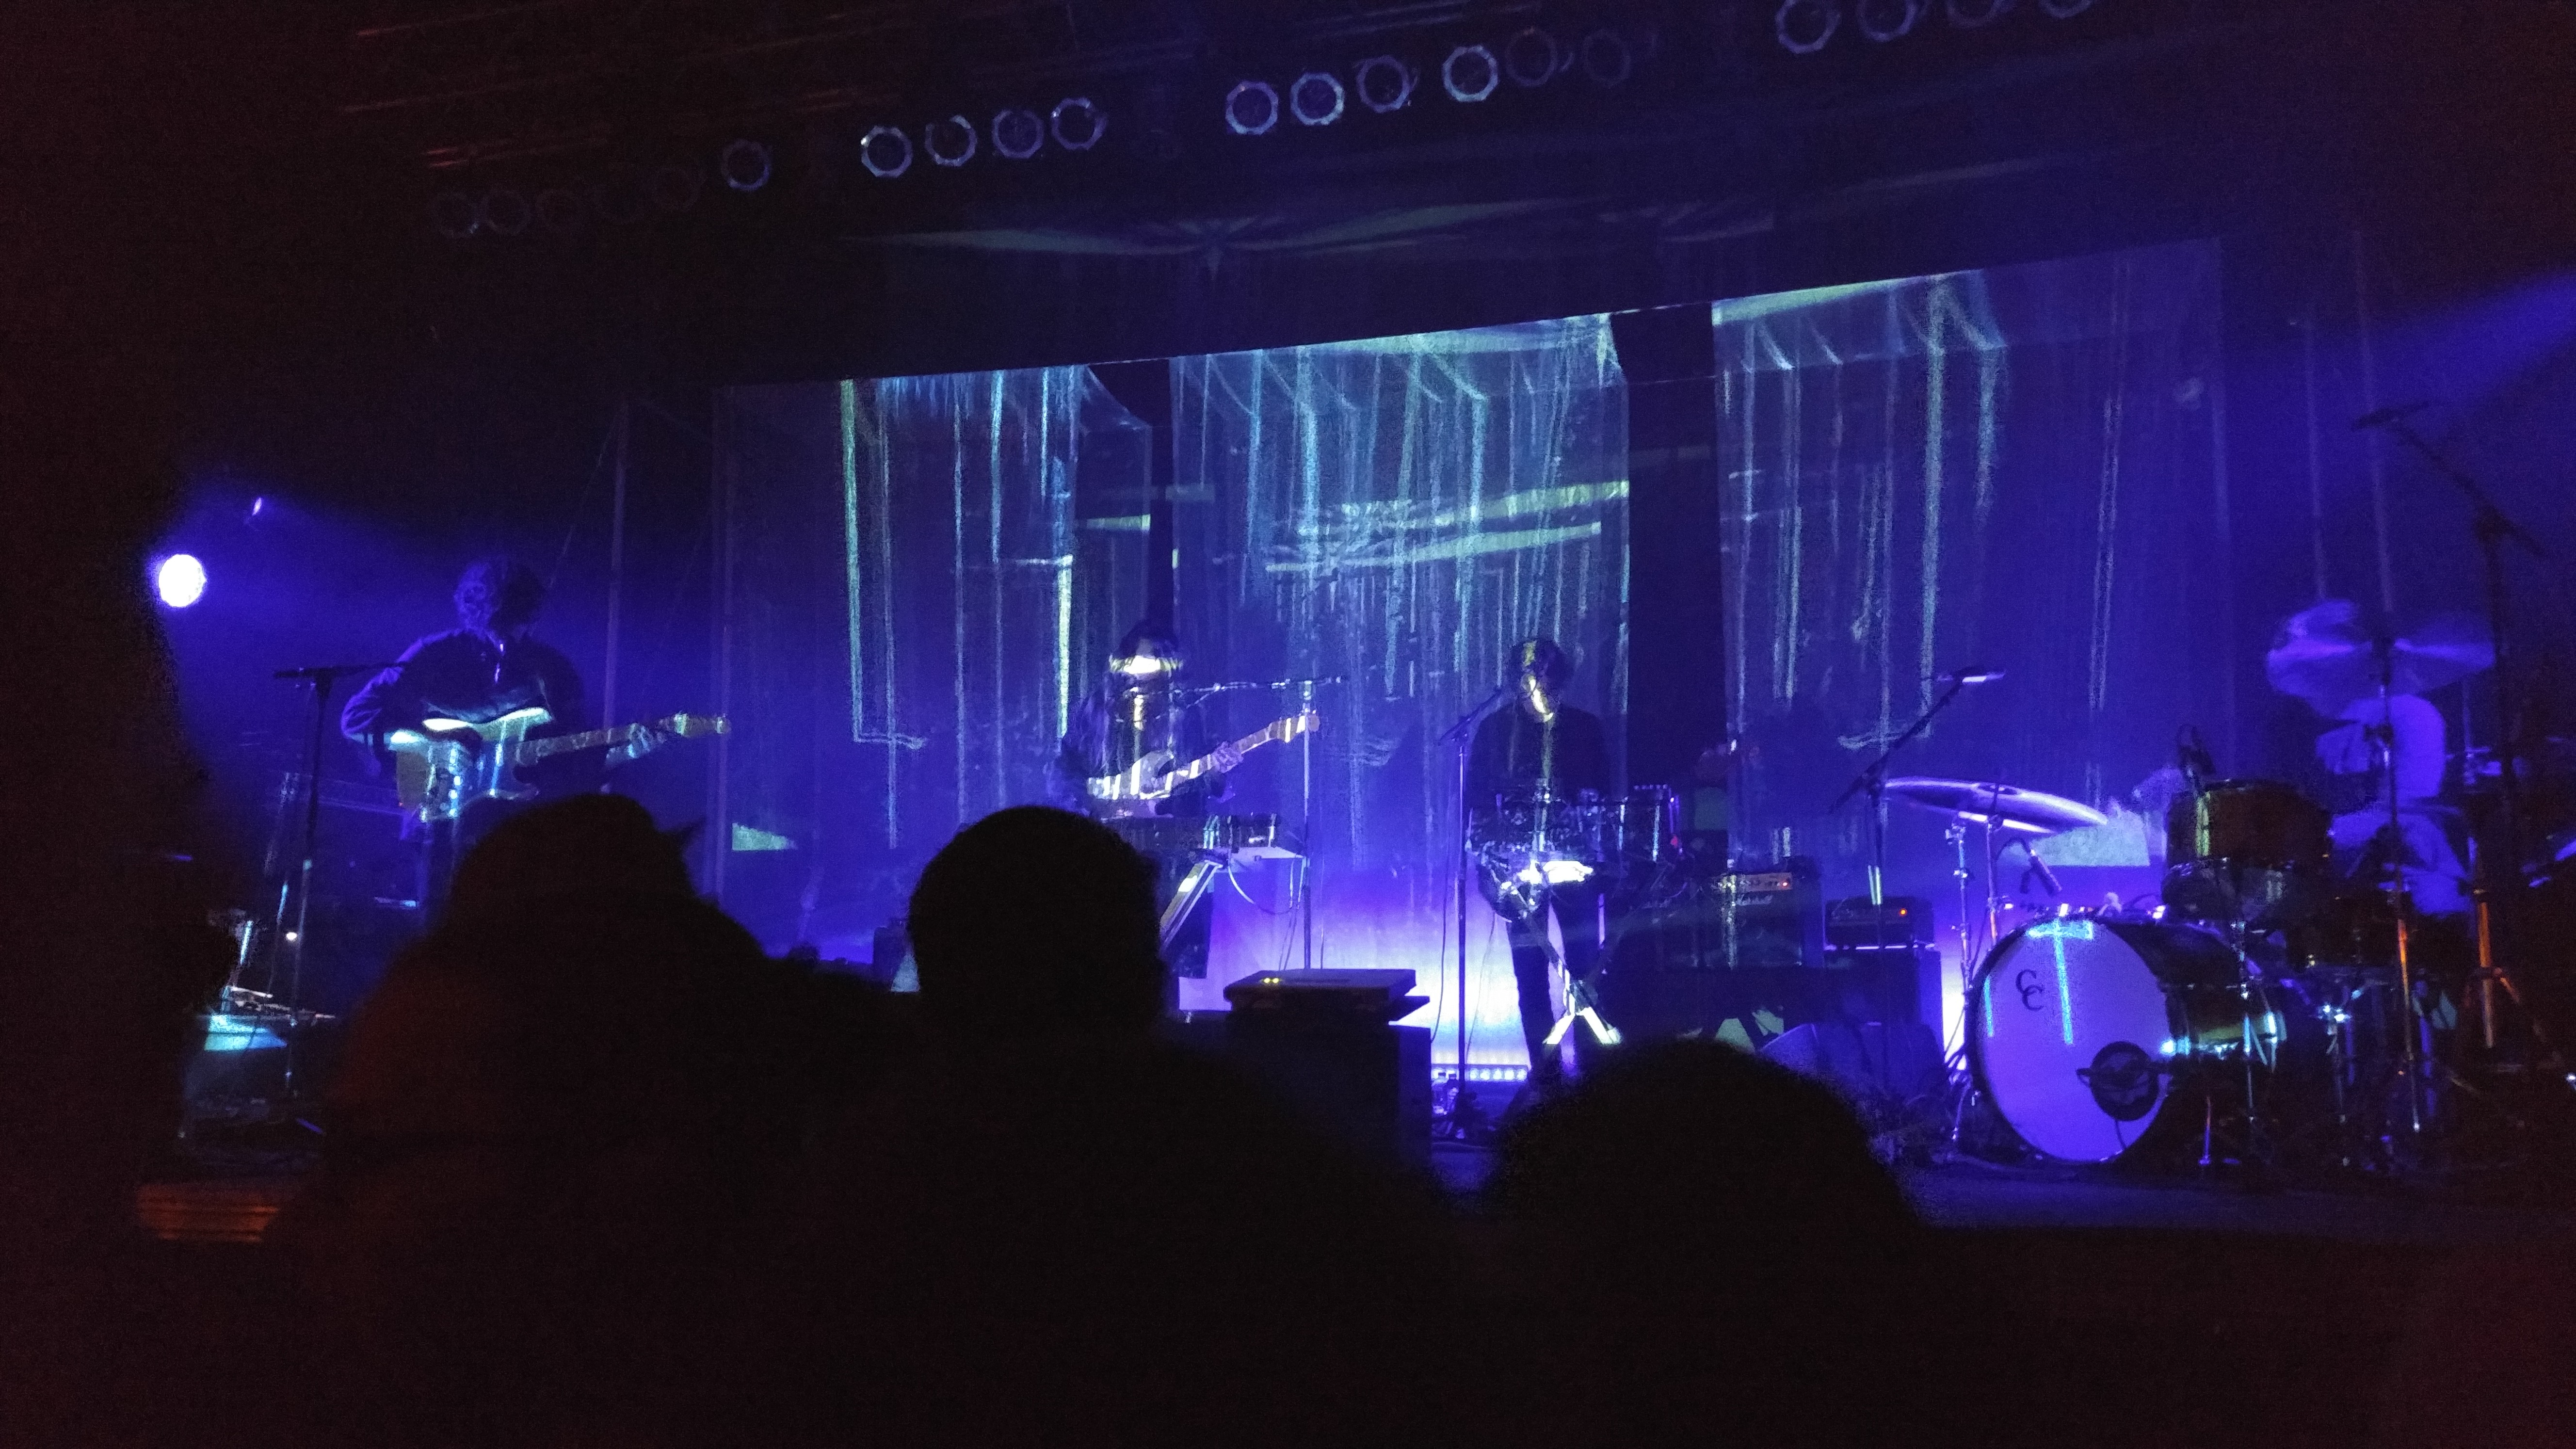 CONCERT REVIEW Beach House inspires dreamy introspection at the